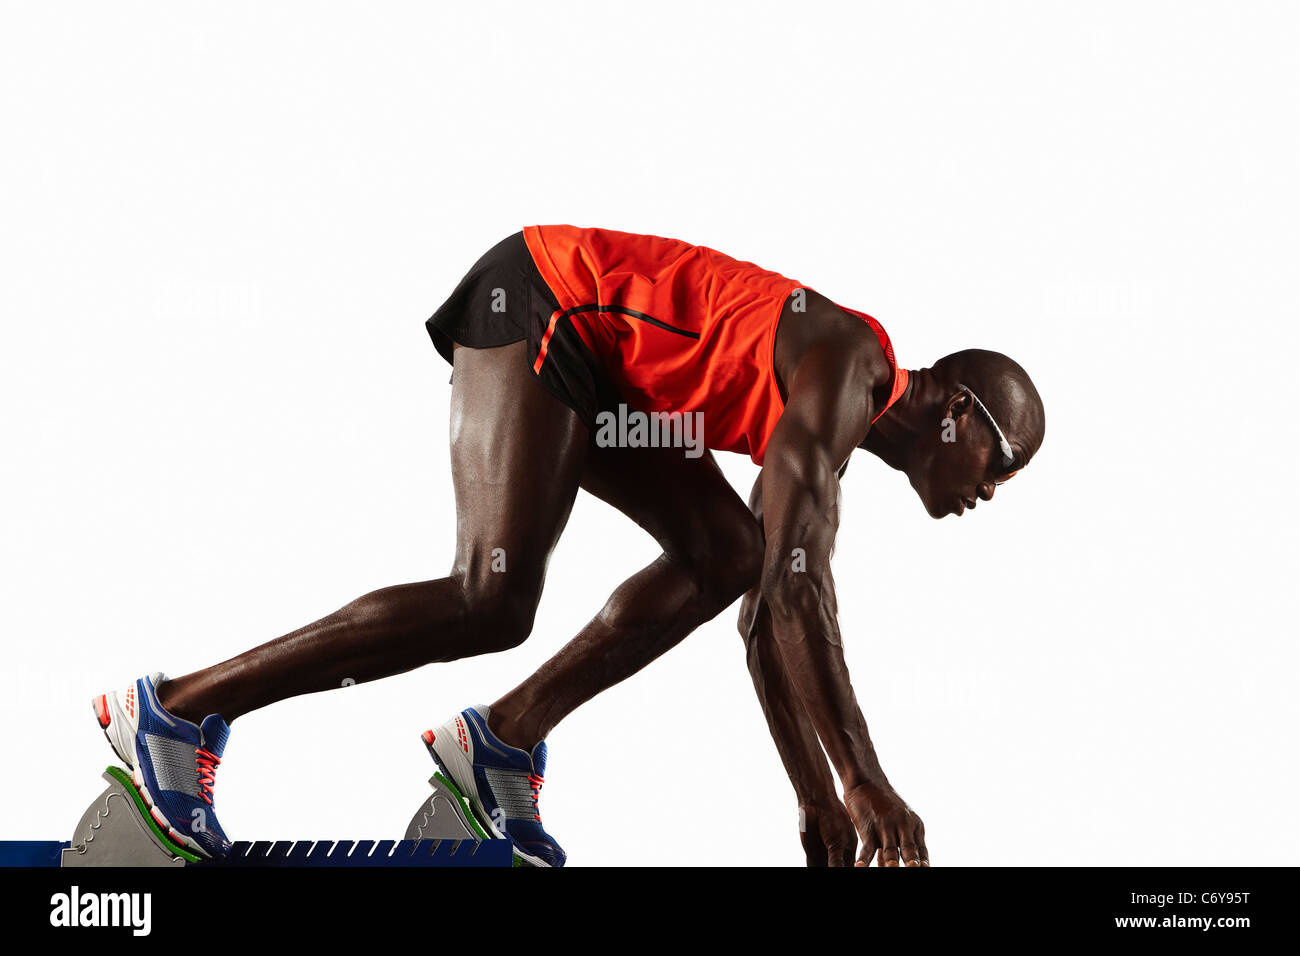 Runner crouched at starting line - Stock Image